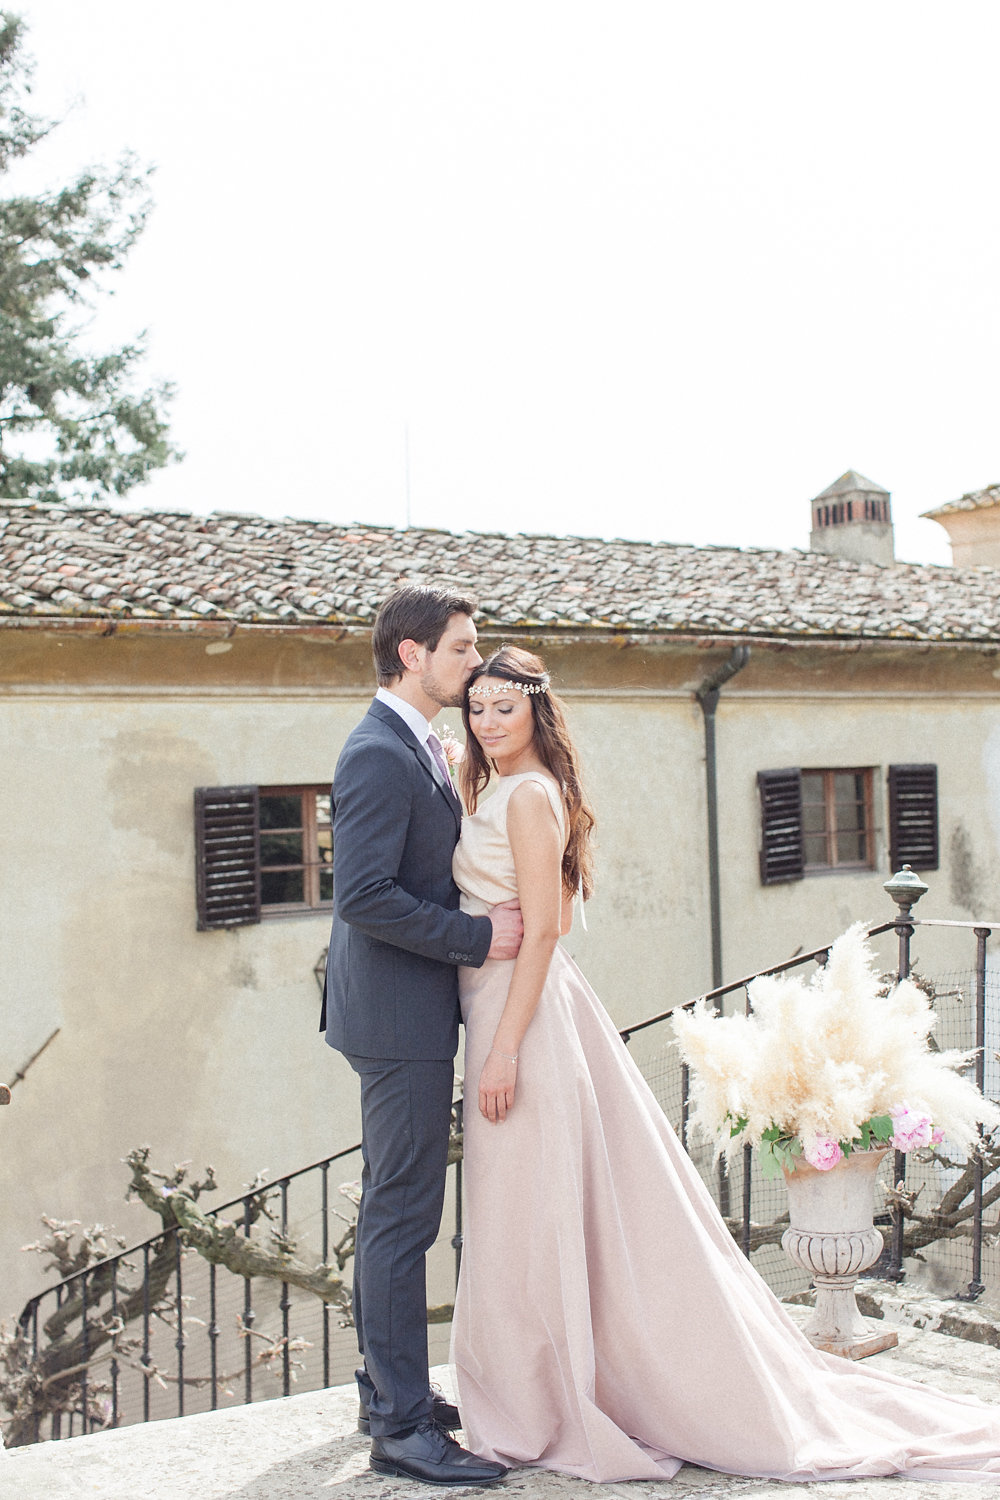 Tuscany Italy Wedding Photographer Roberta Facchini 29